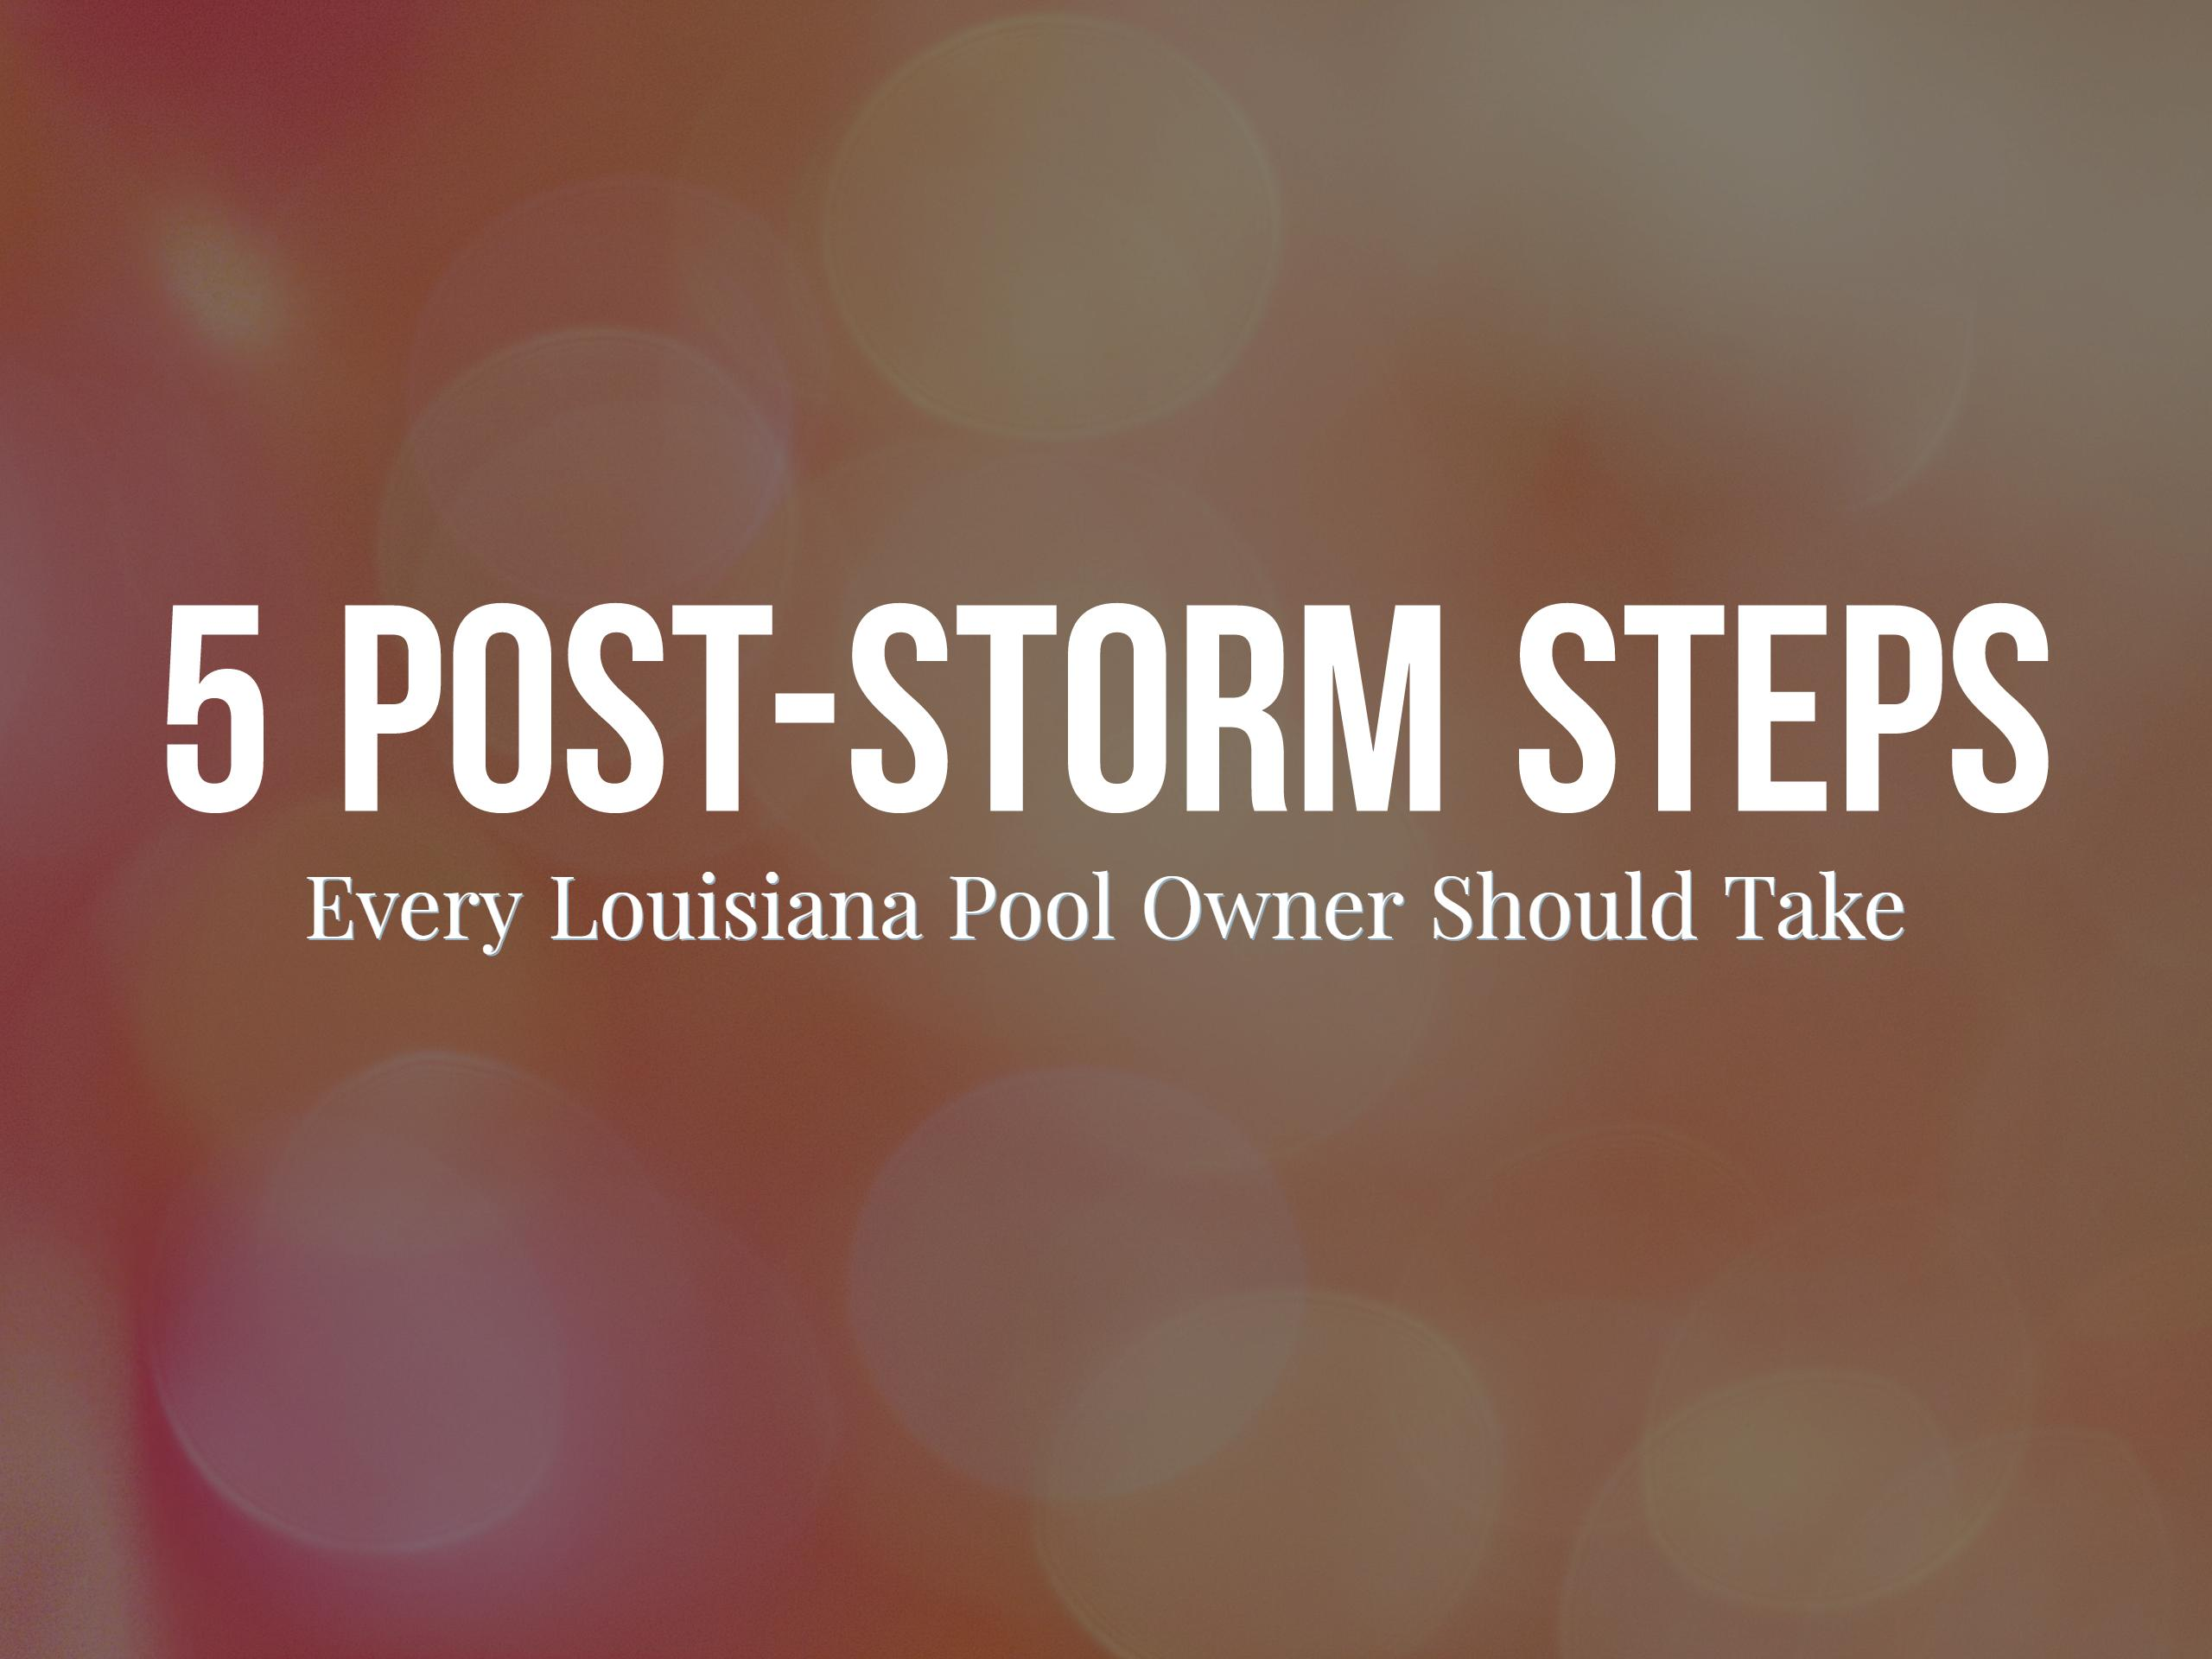 5_Post-Storm_Steps_Every_Louisiana_Pool_Owner_Should_Take.jpg